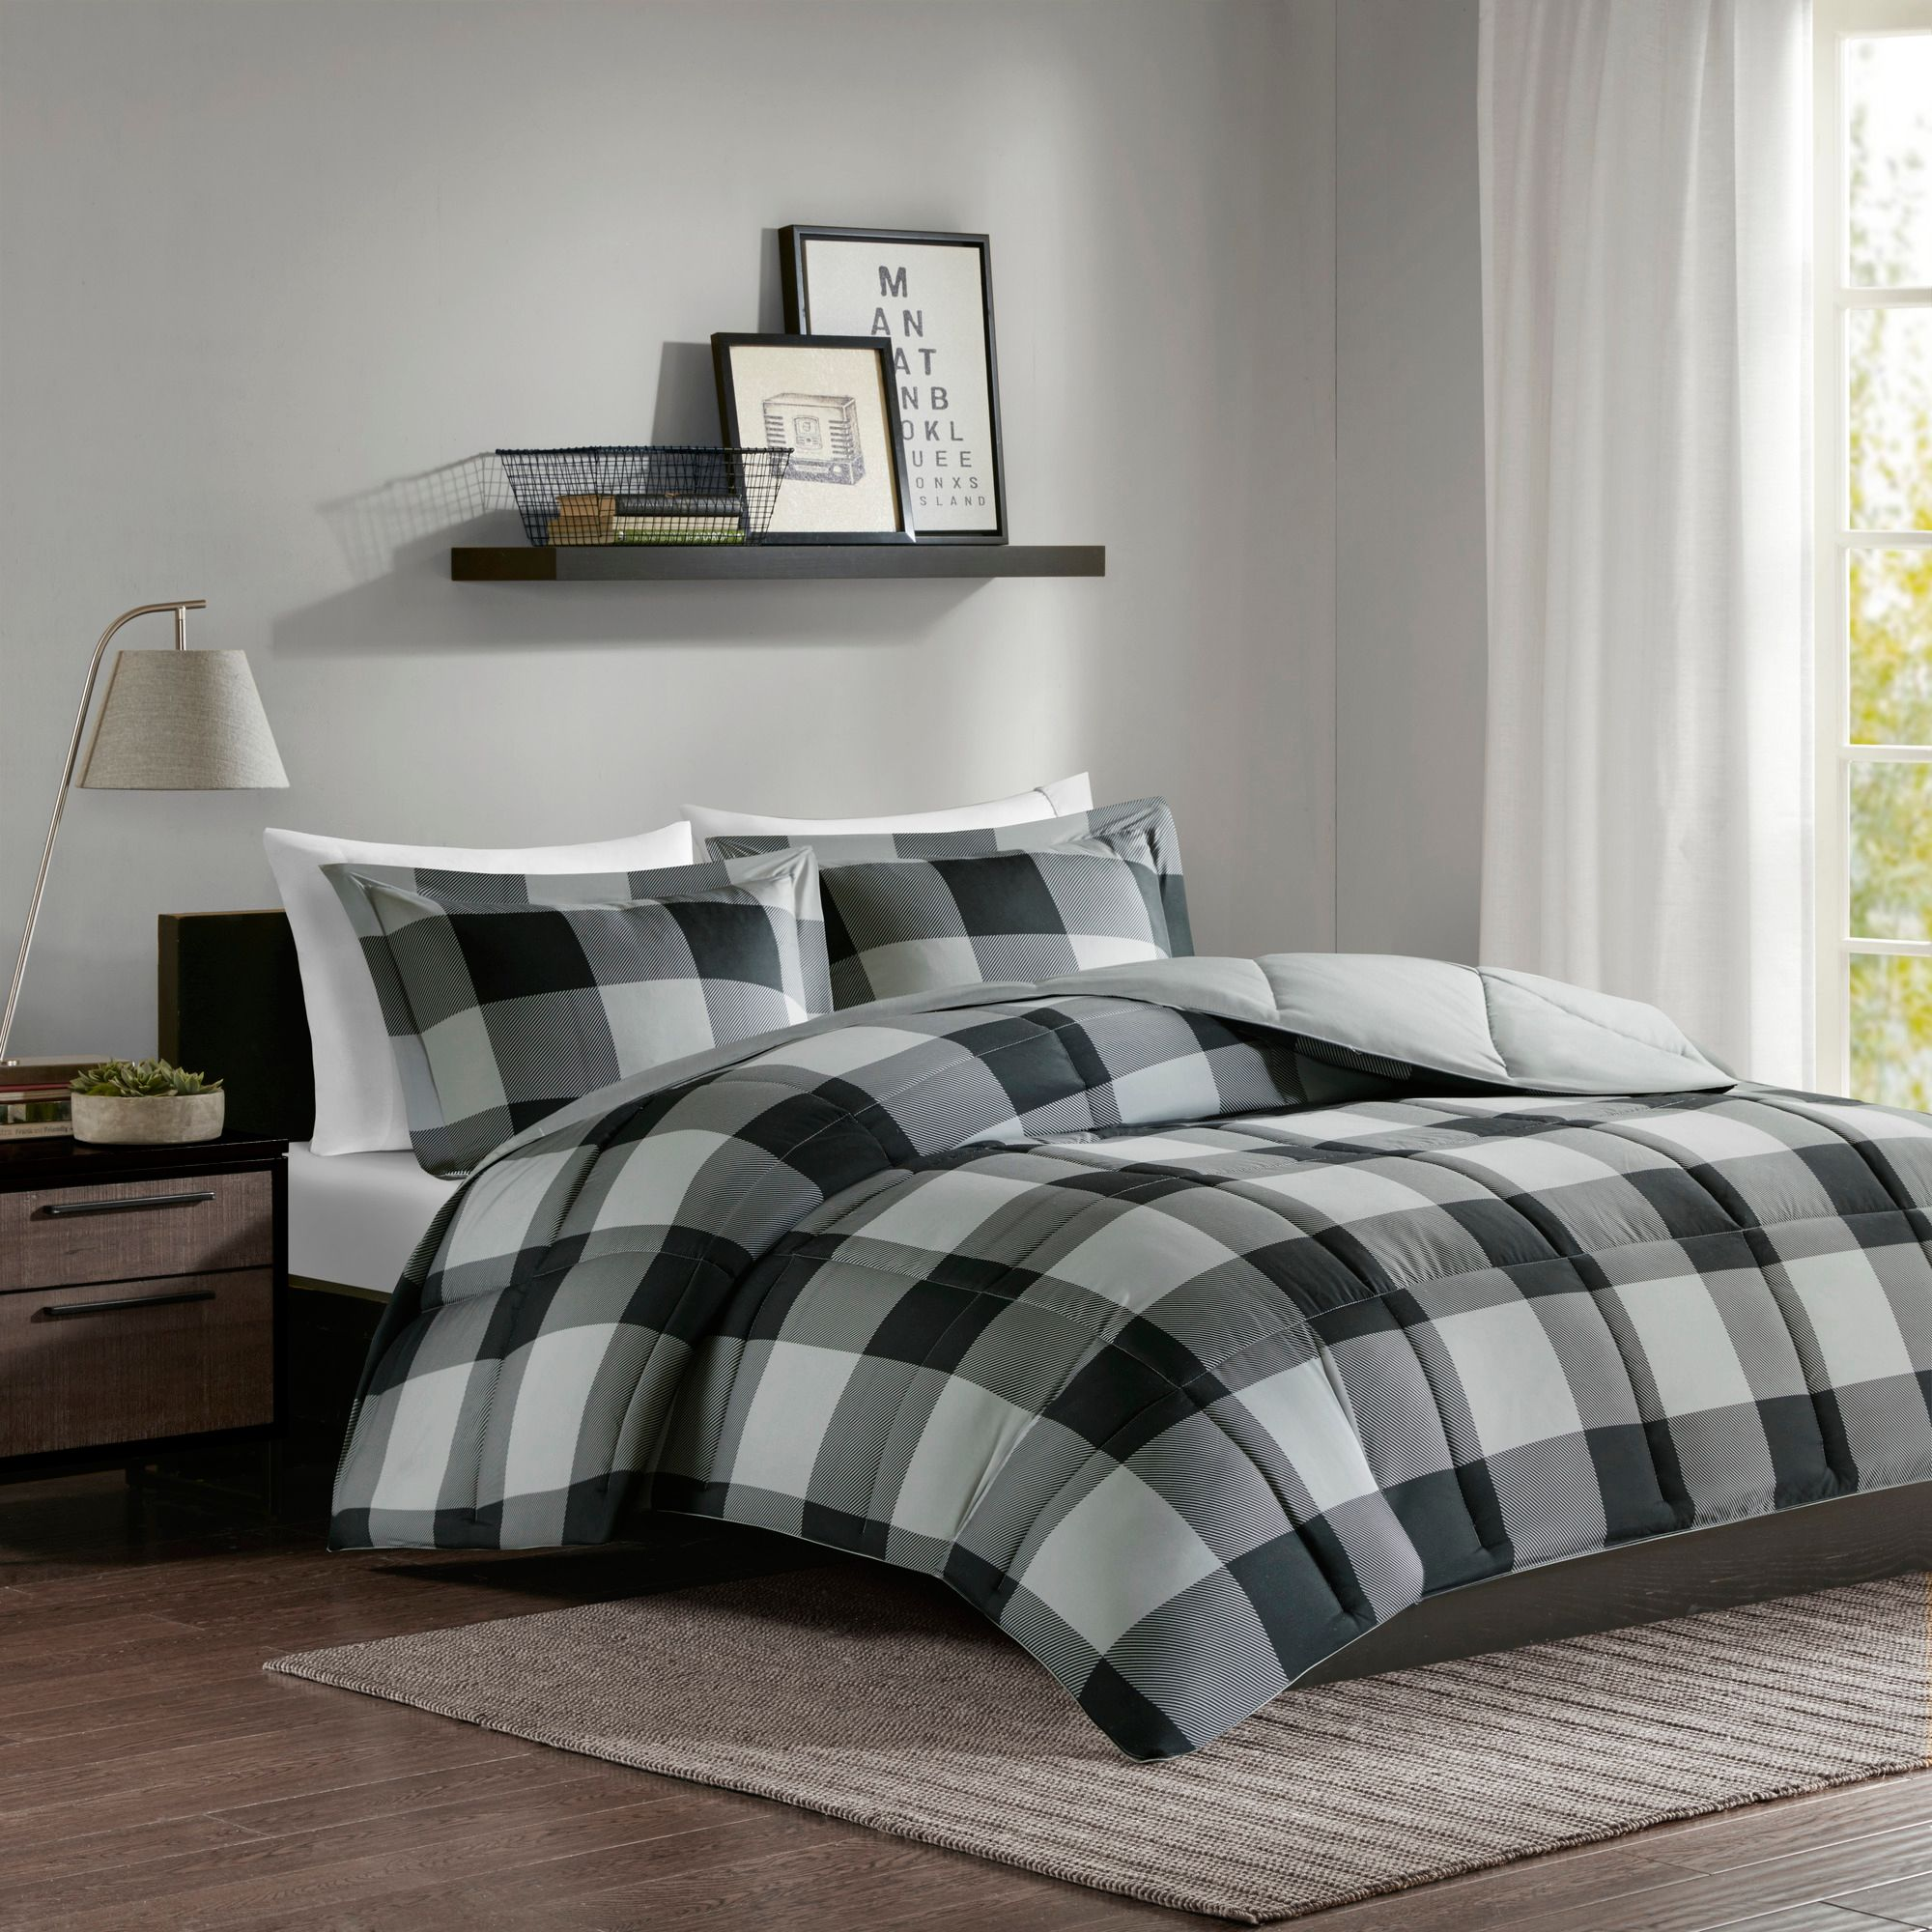 Madison Park Essentials Barrett Twin/Twin Xl Comforter Set In Grey/Black by Bed Bath And Beyond